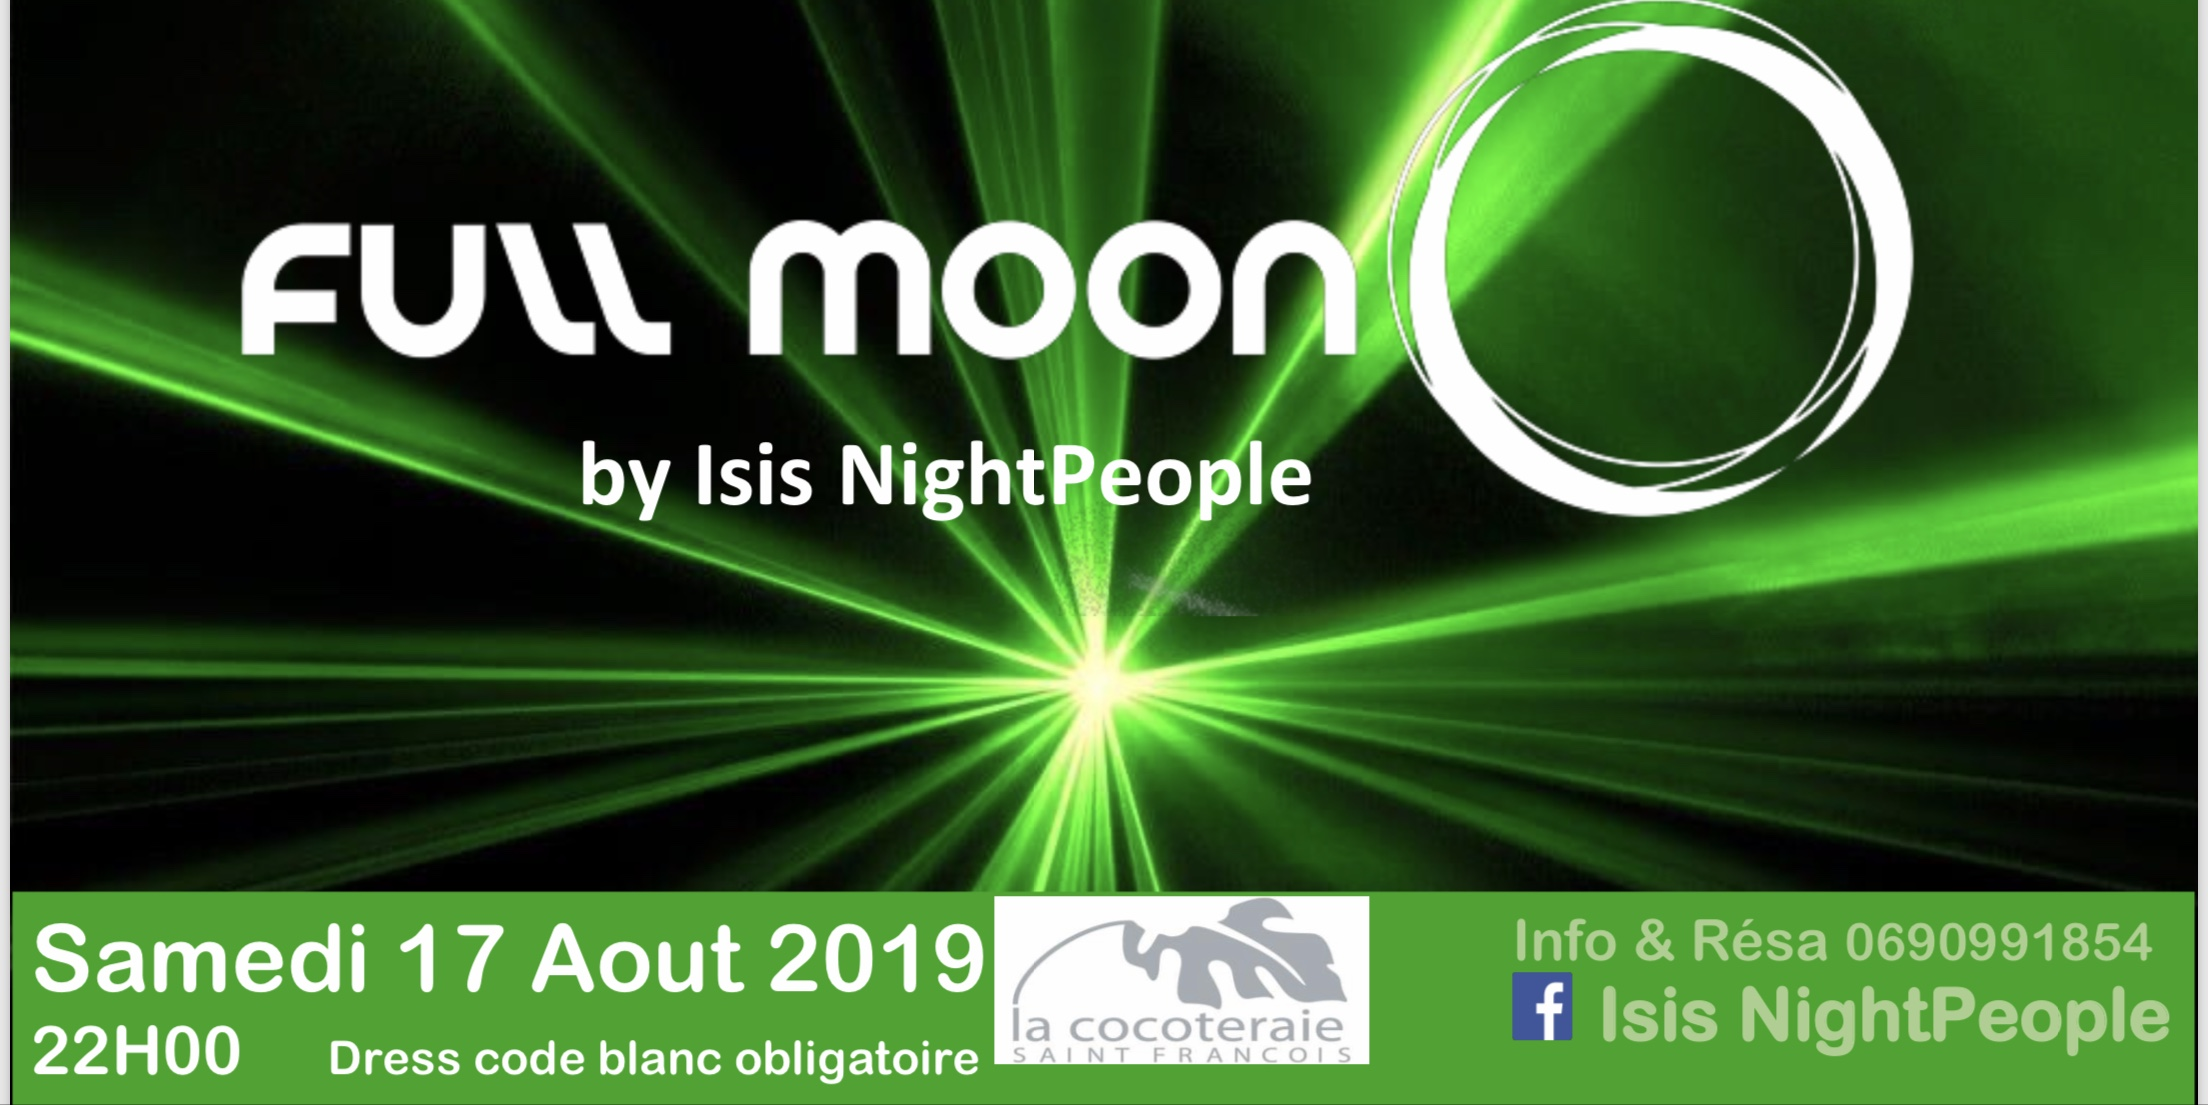 FULL MOON by Isis NightPeople